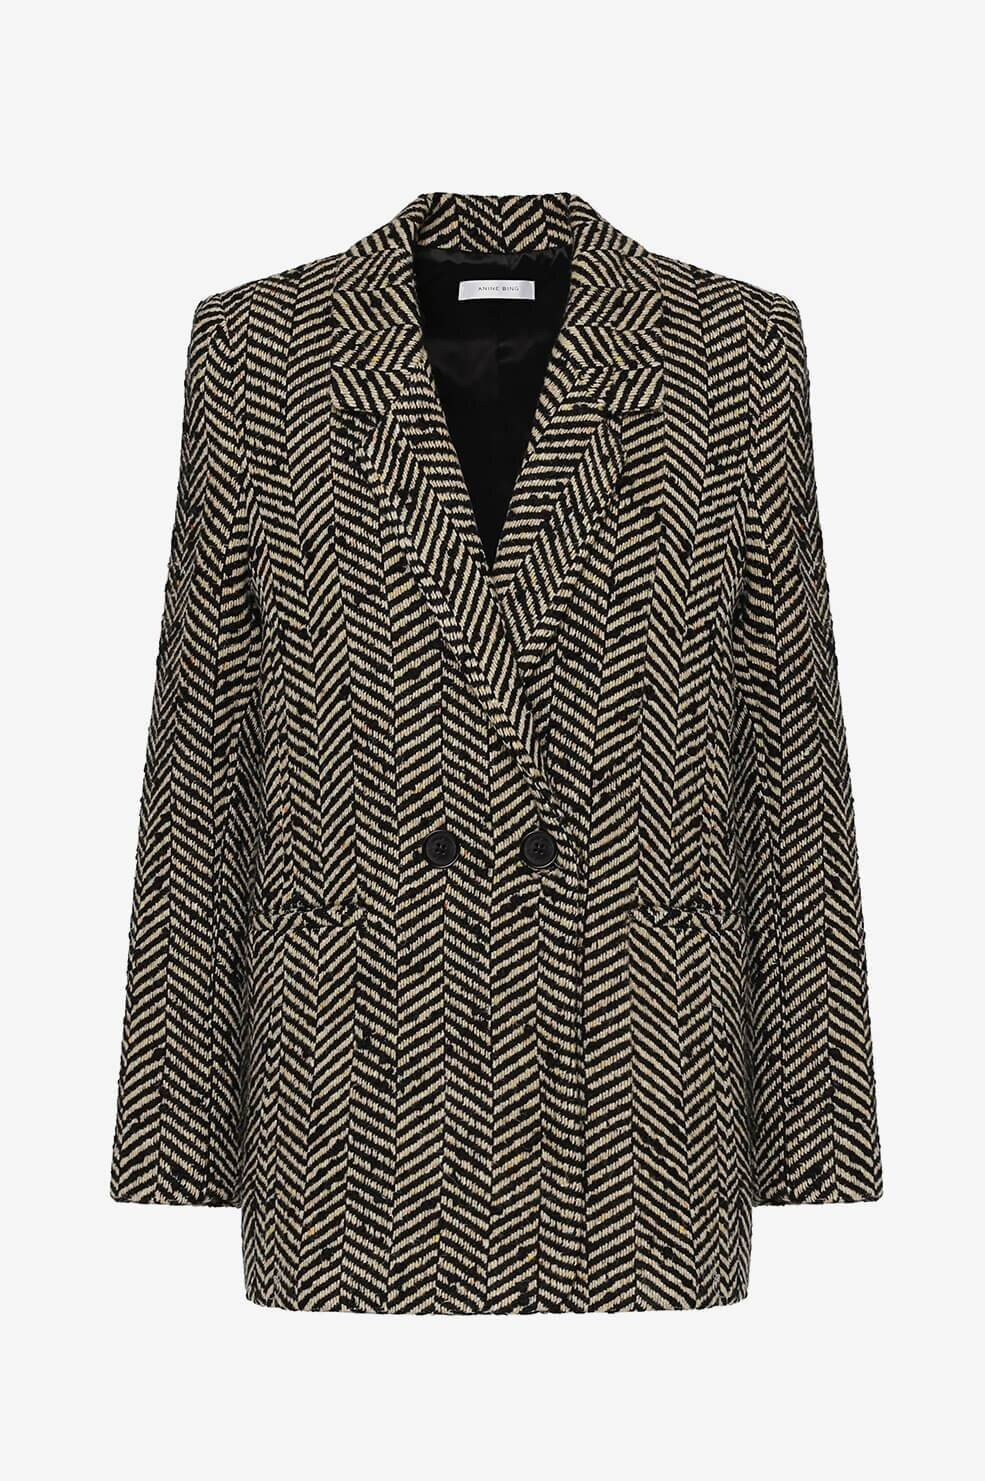 ANINE-BING FISHBONE BLAZER CREAM AND BLACK-1